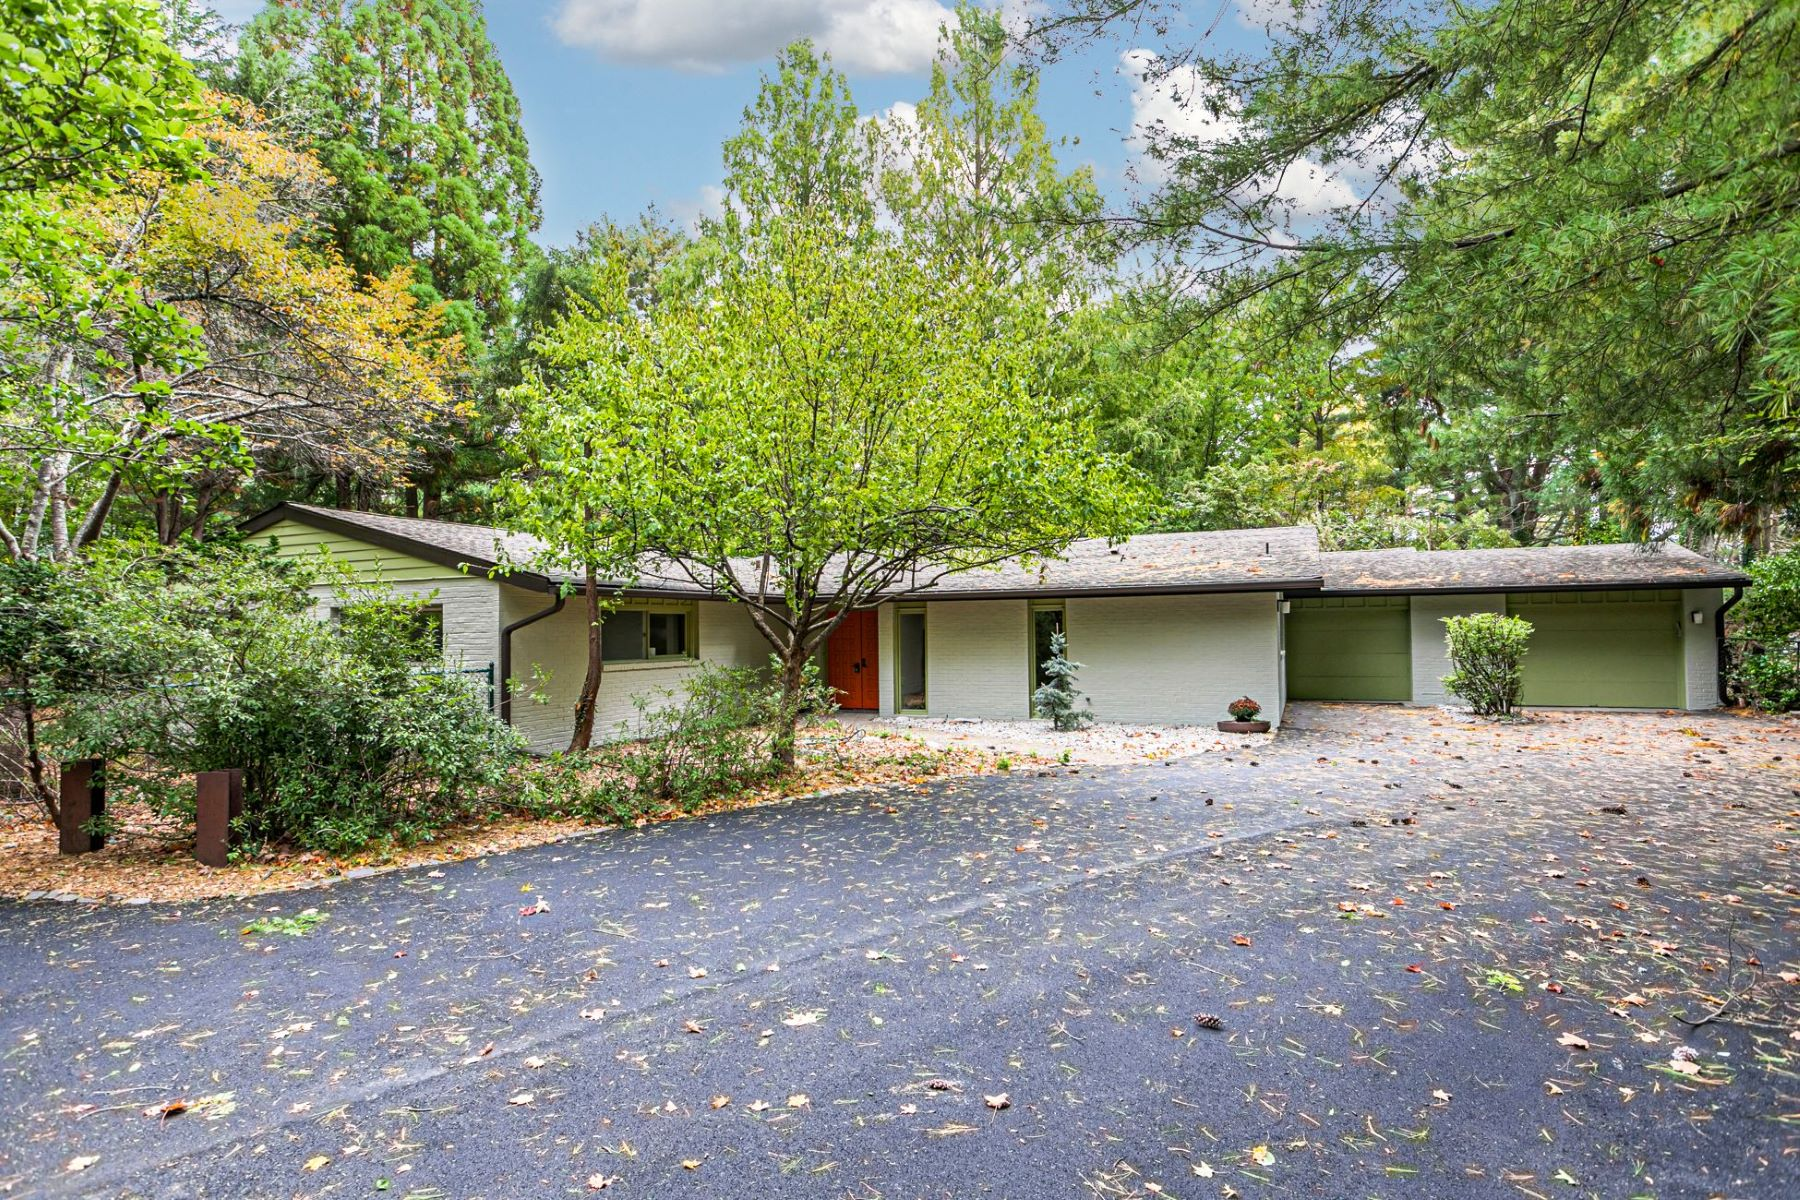 Single Family Homes for Sale at Authentic Mid-century Modern Home 1028 Mercer Road, Princeton, New Jersey 08540 United States